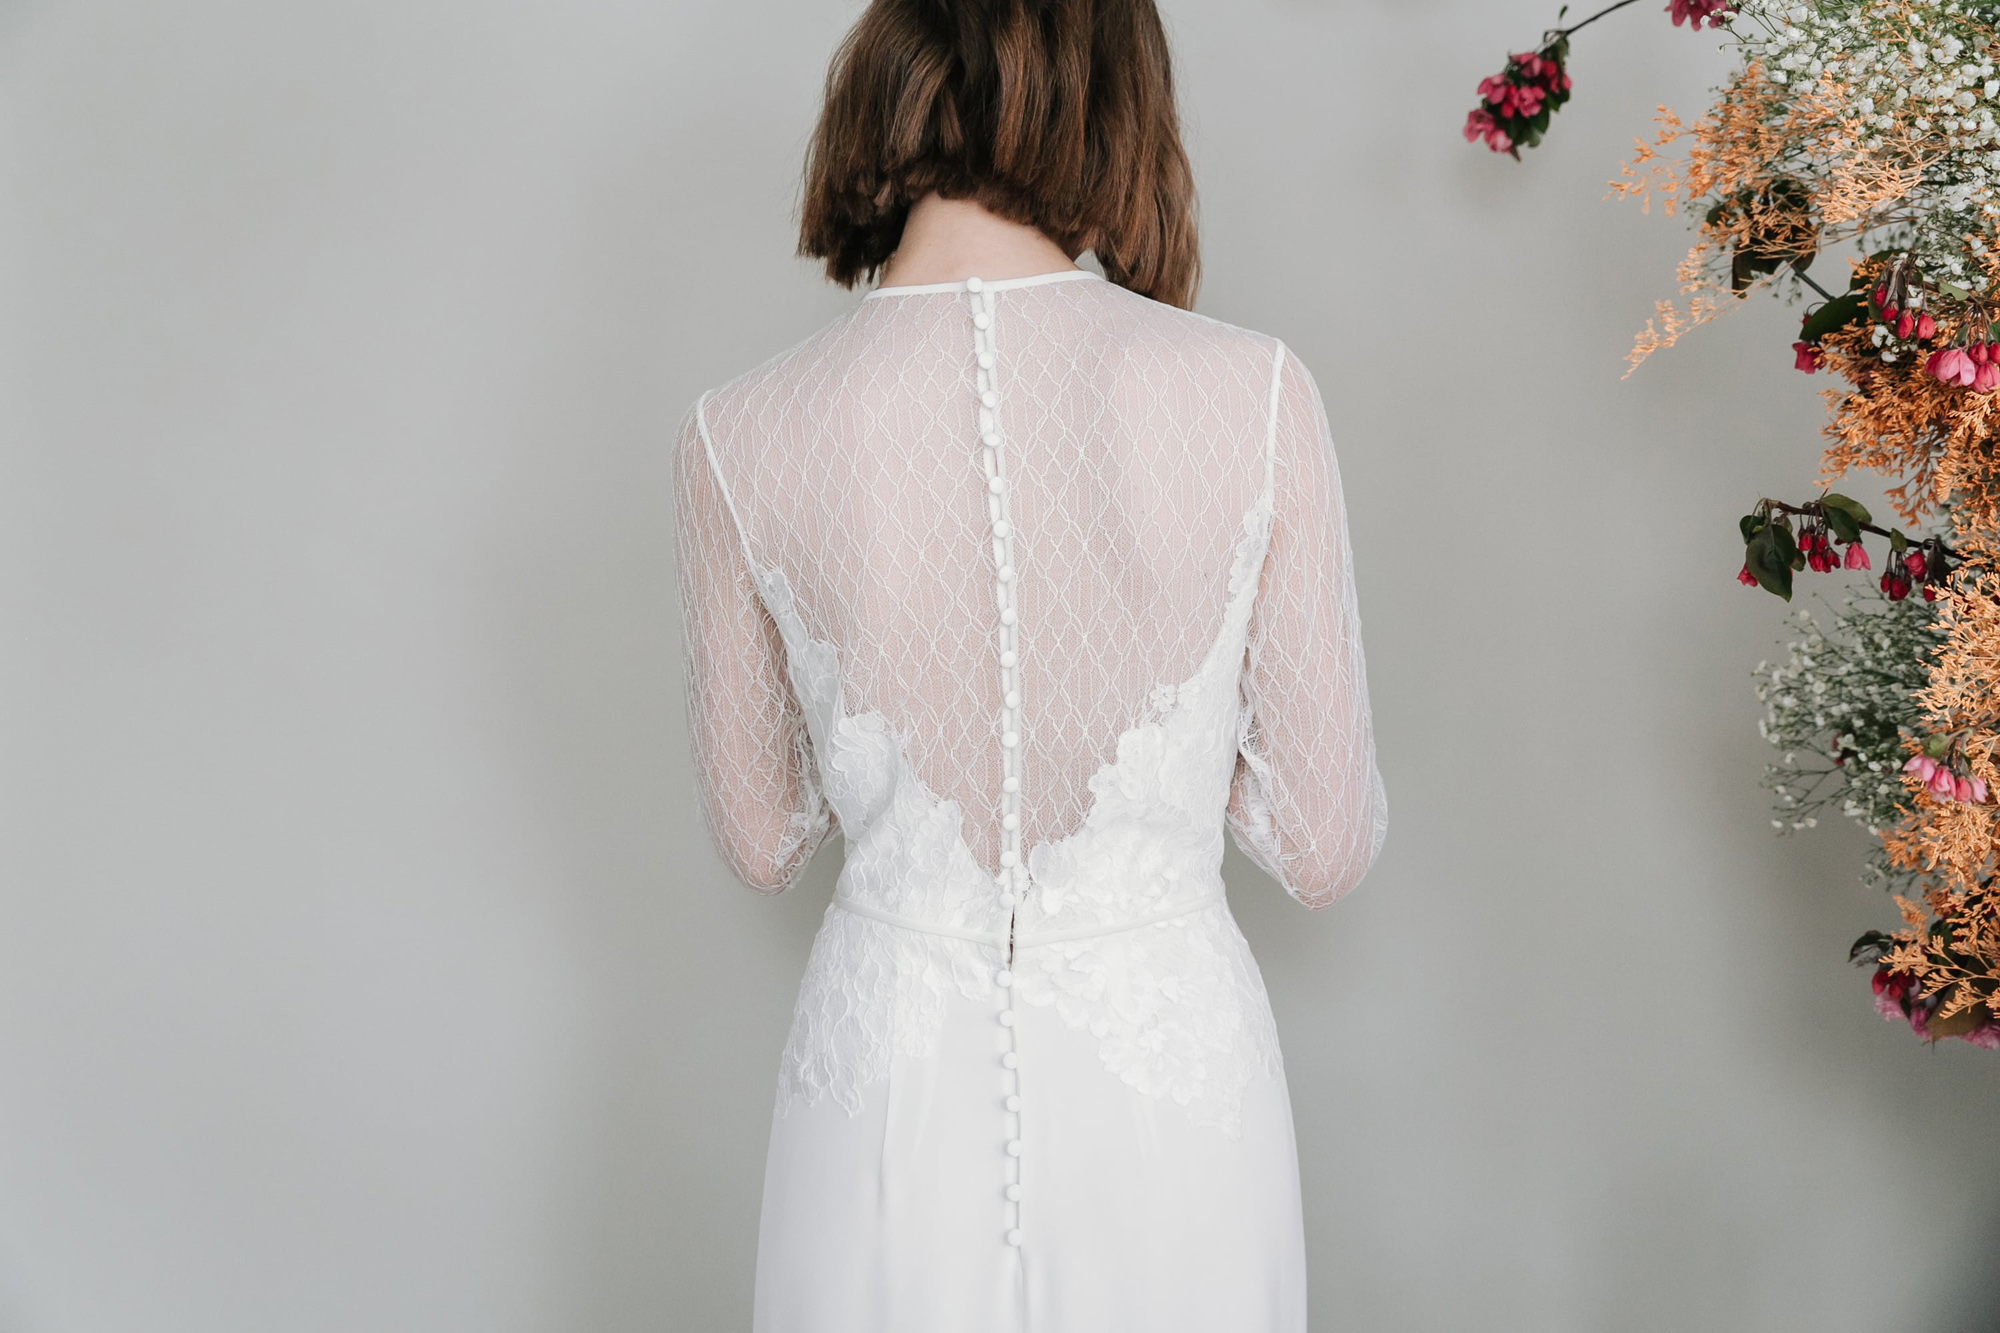 Kate-Beaumont-Sheffield-Geranium-Applique-Lace-Silk-Modern-Minimal-Long-Sleeved-Wedding-Gown-13.jpg